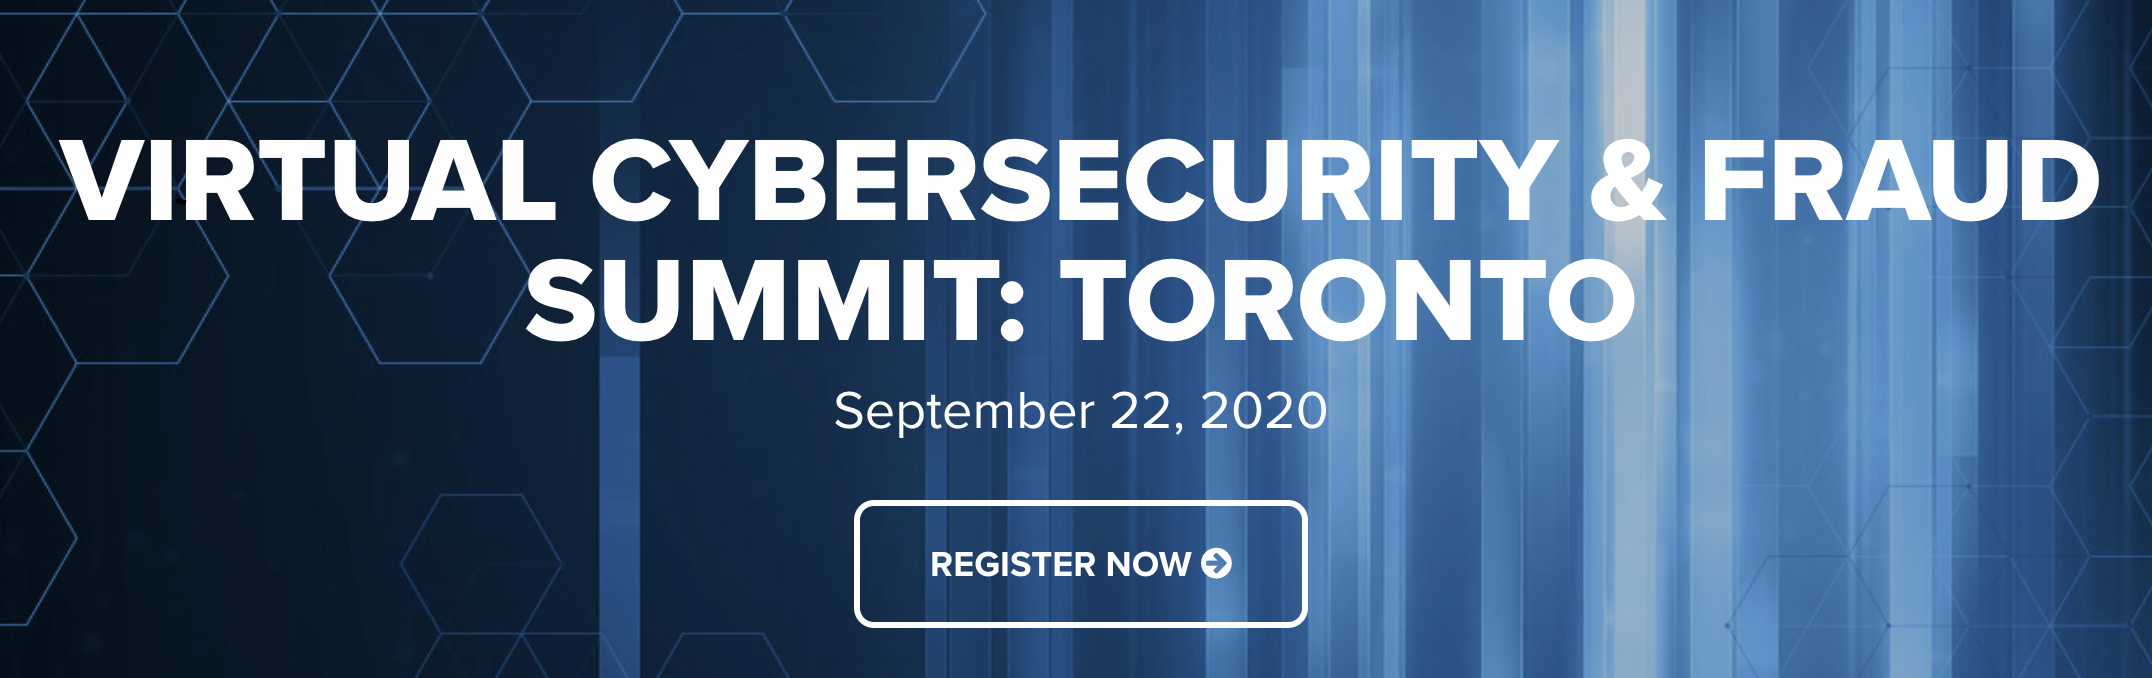 Virtual Cybersecurity & Fraud Summit